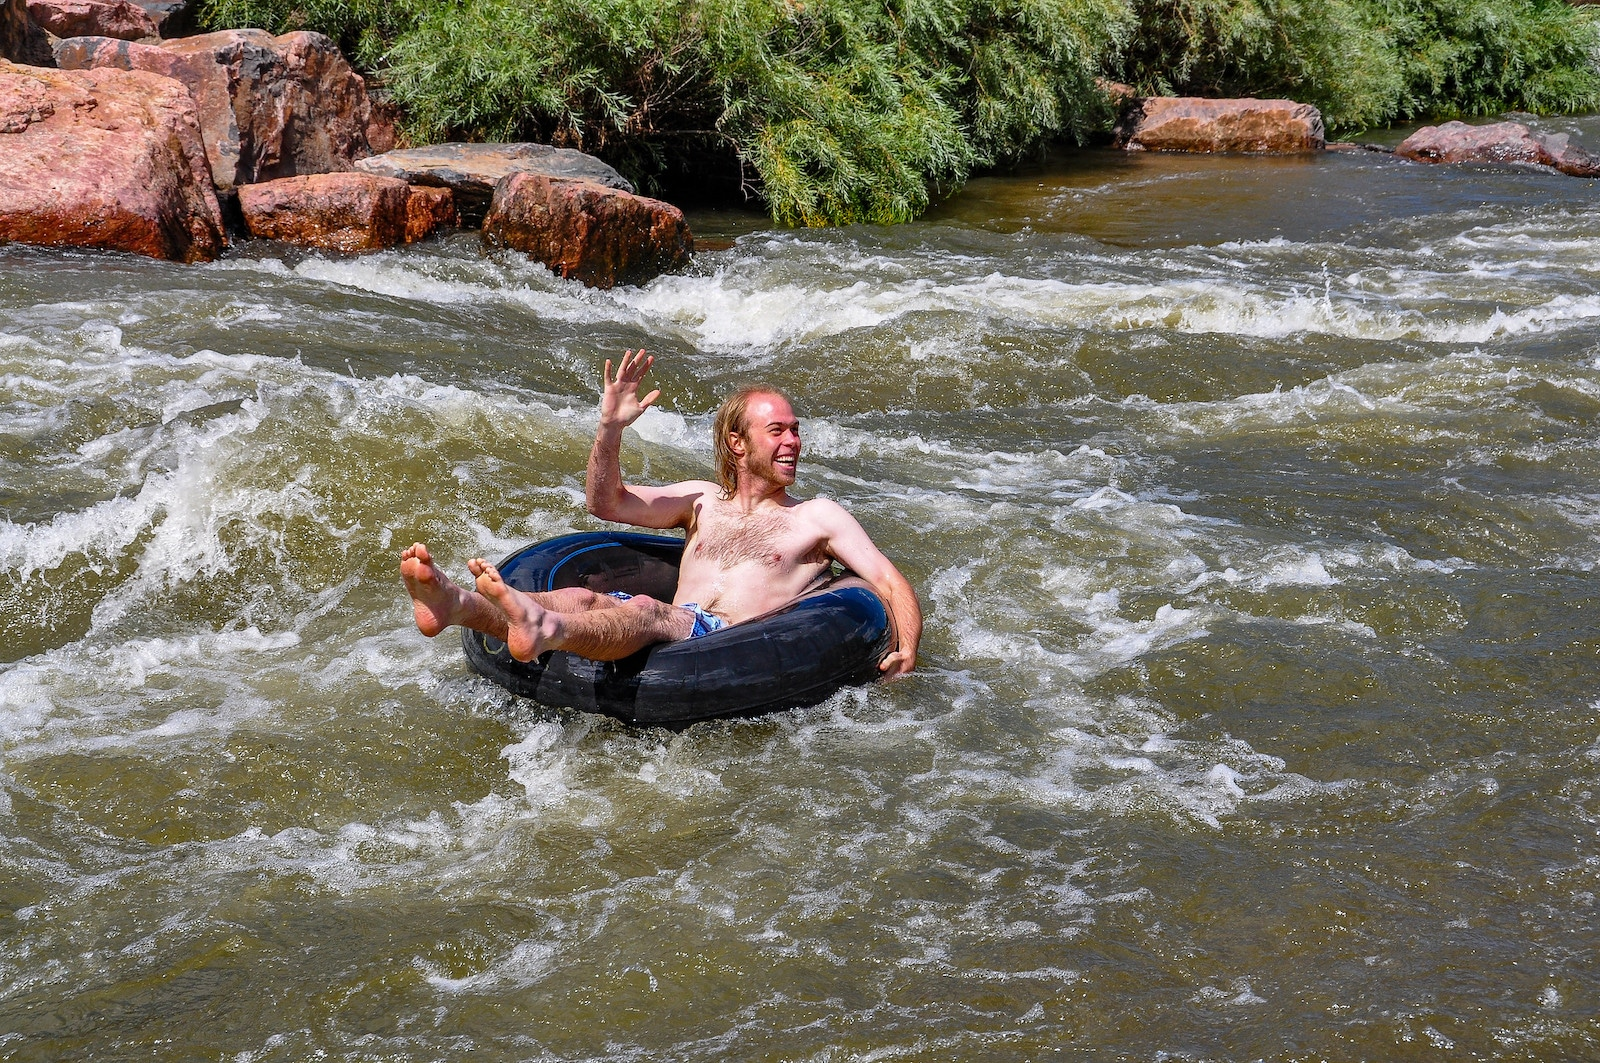 Image of a tuber at Confluence Park in Denver, Colorado